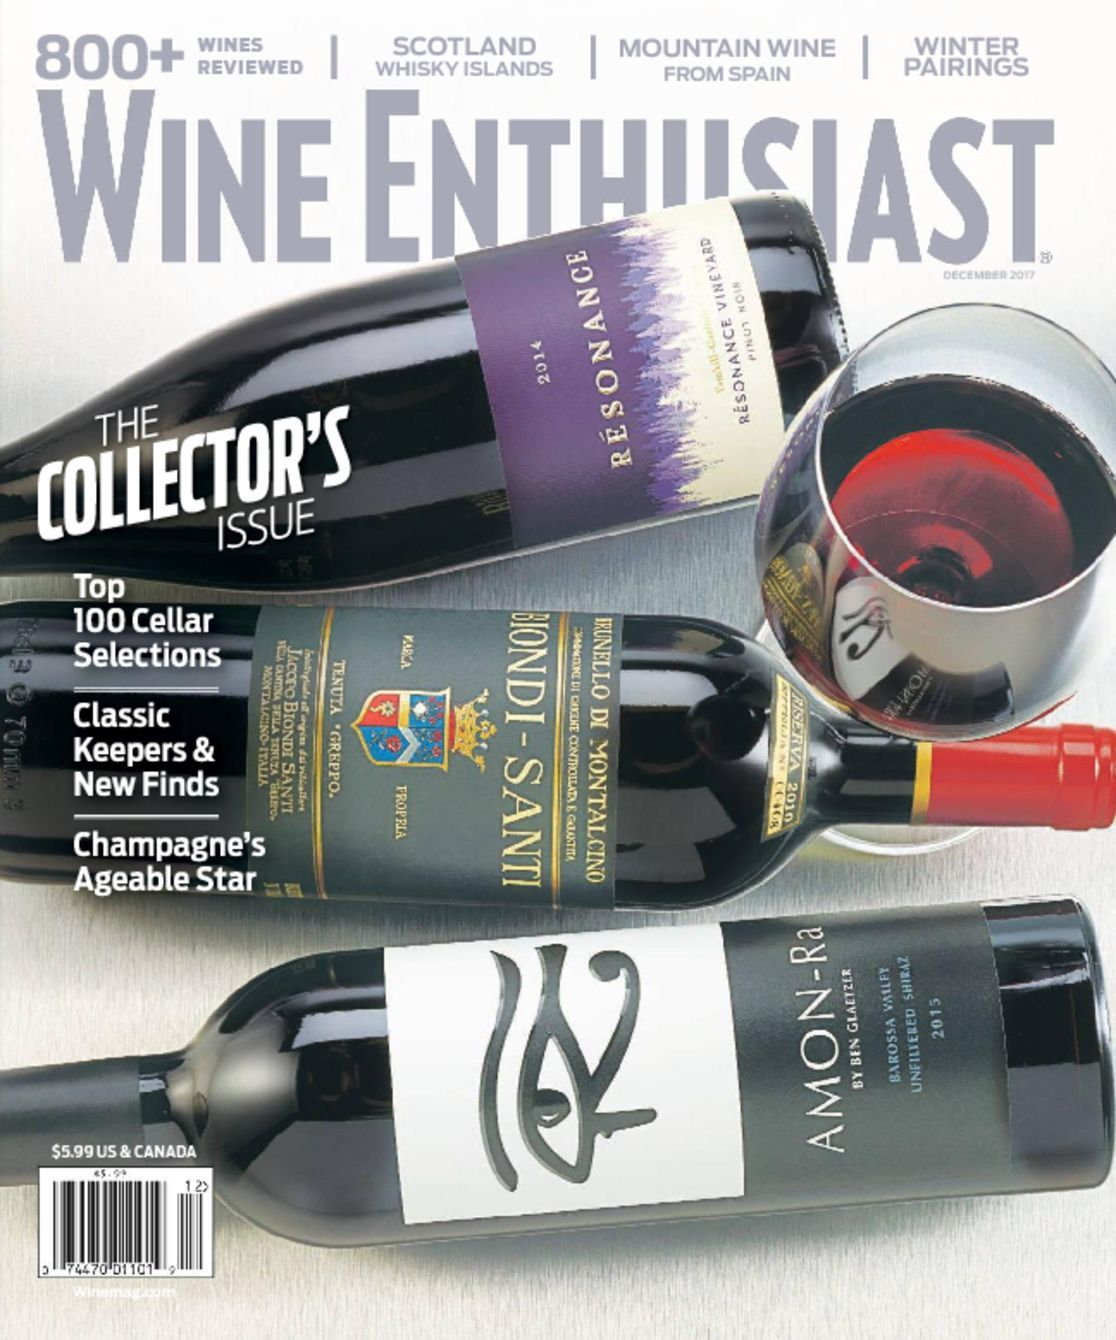 5448-wine-enthusiast-Cover-2017-December-1-Issue.jpg